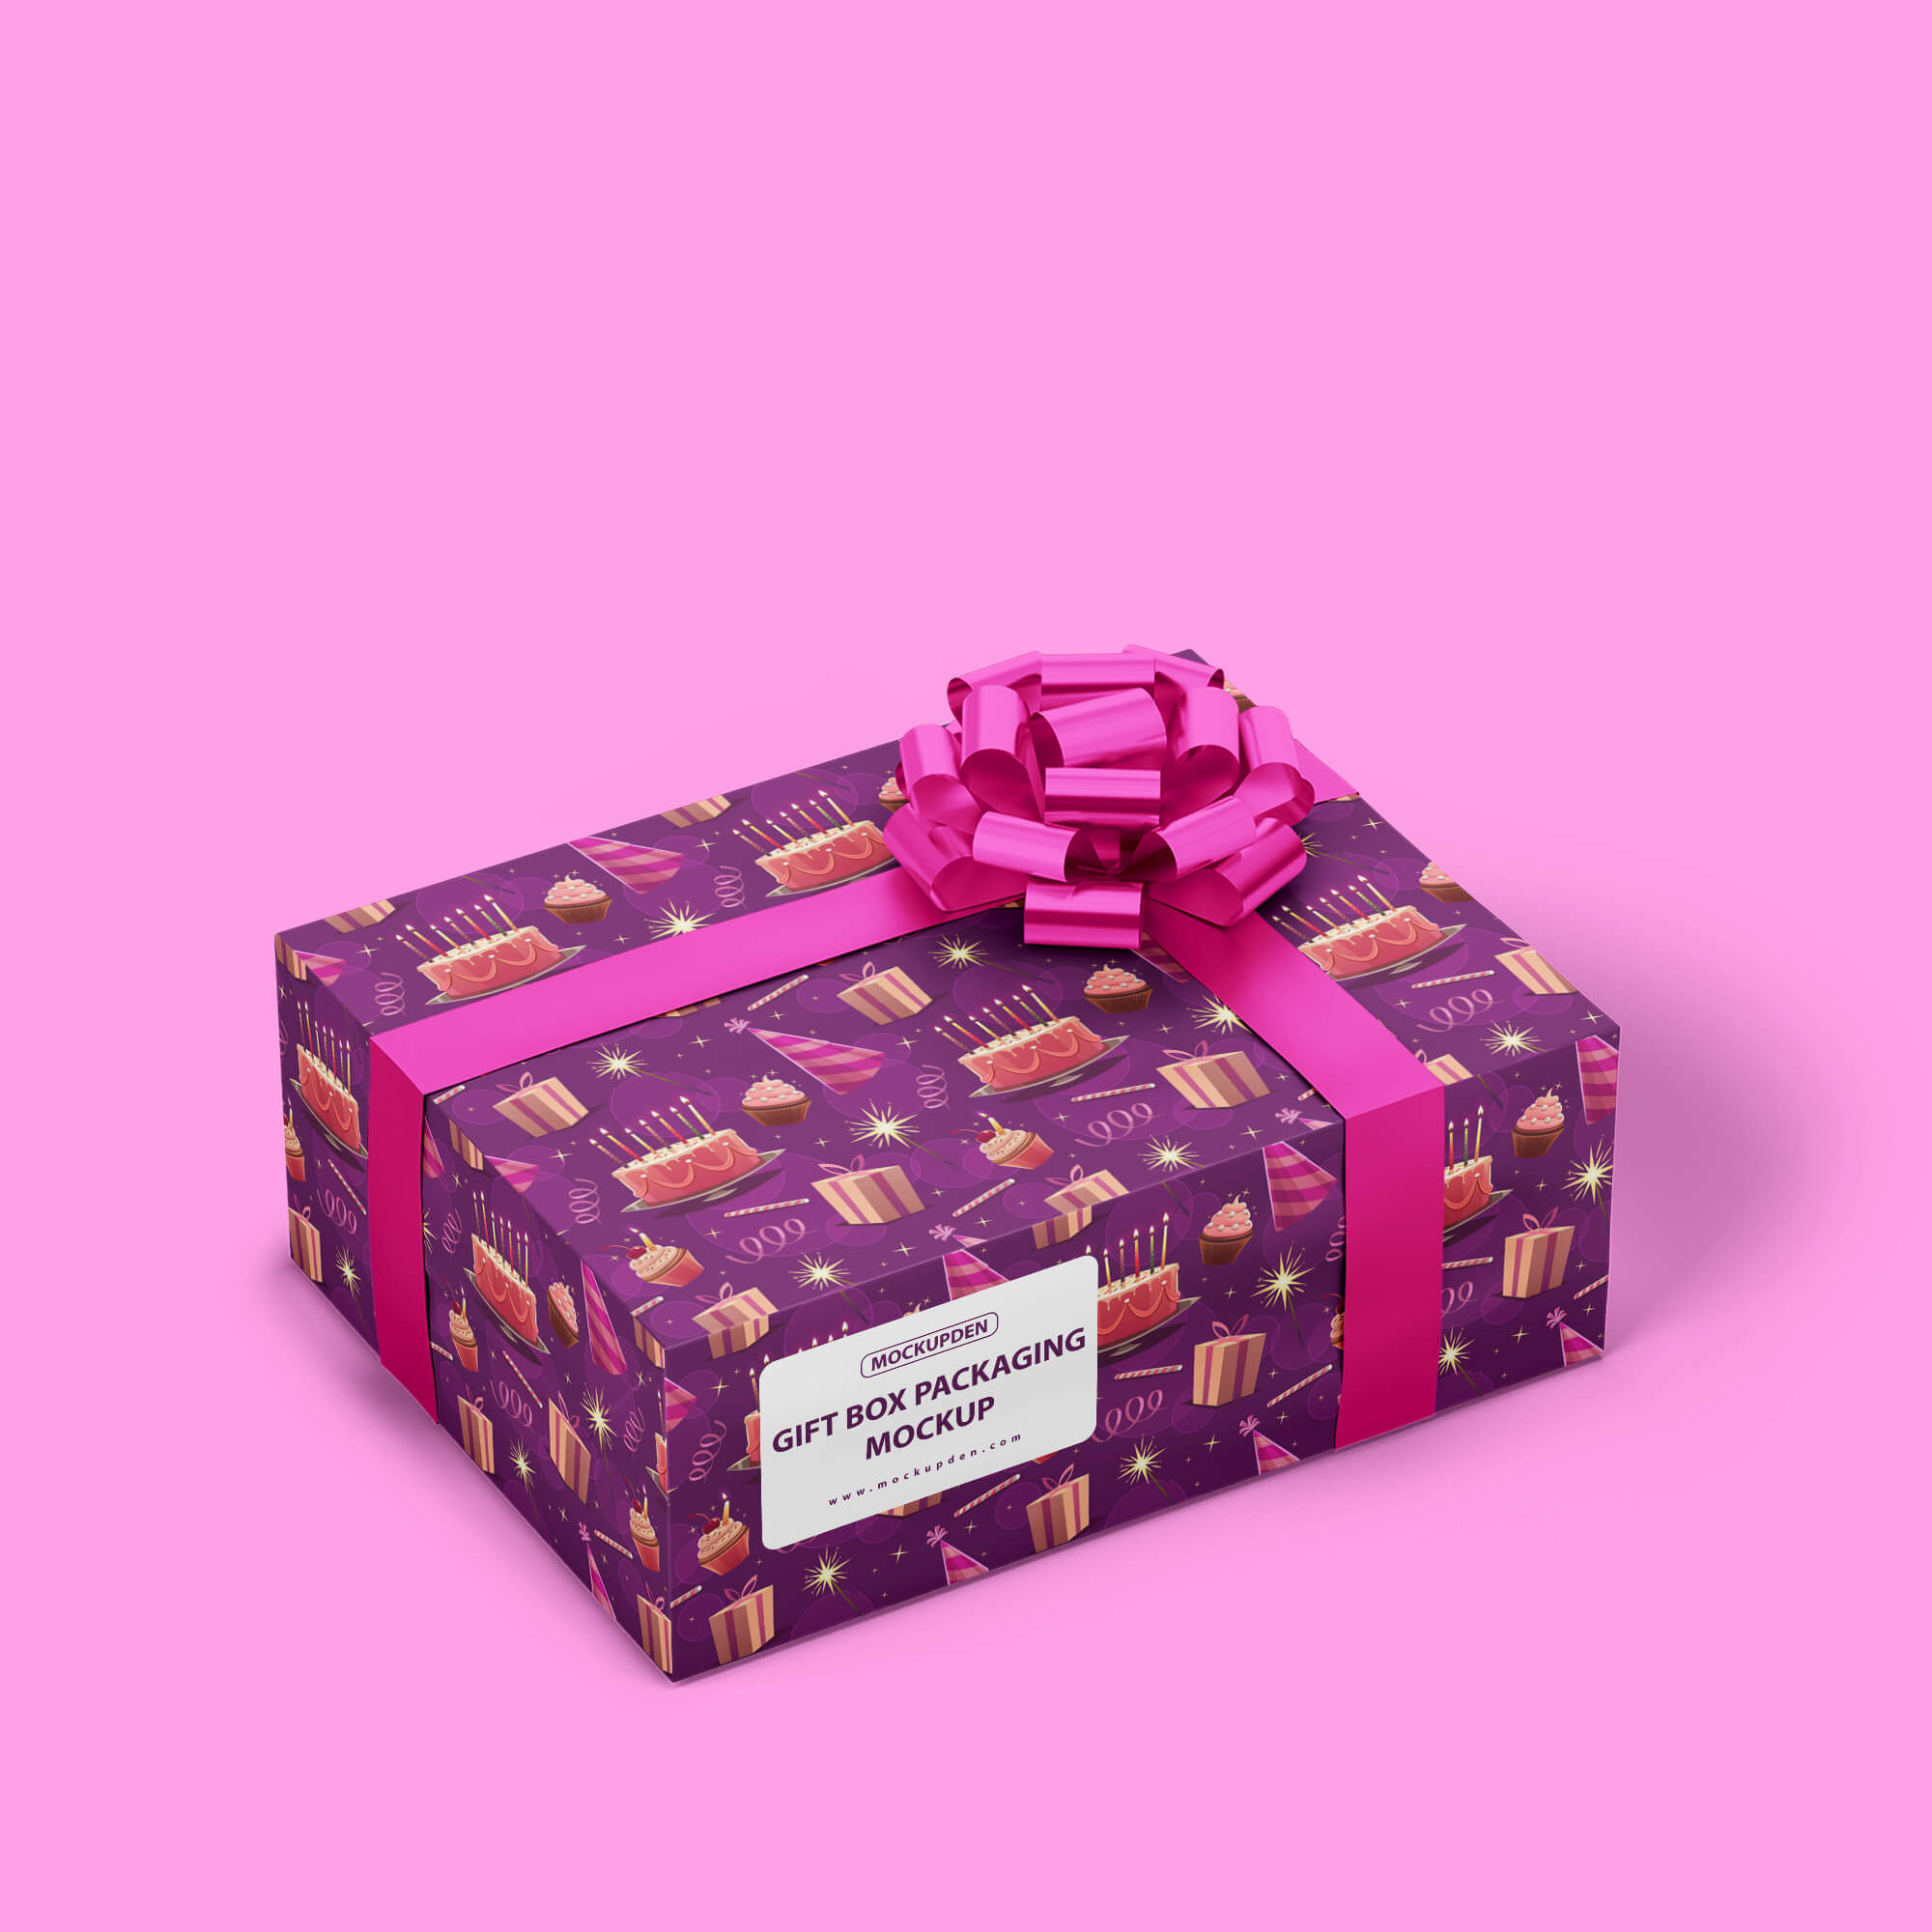 Design Free Gift Box Packaging Mockup PSD Template